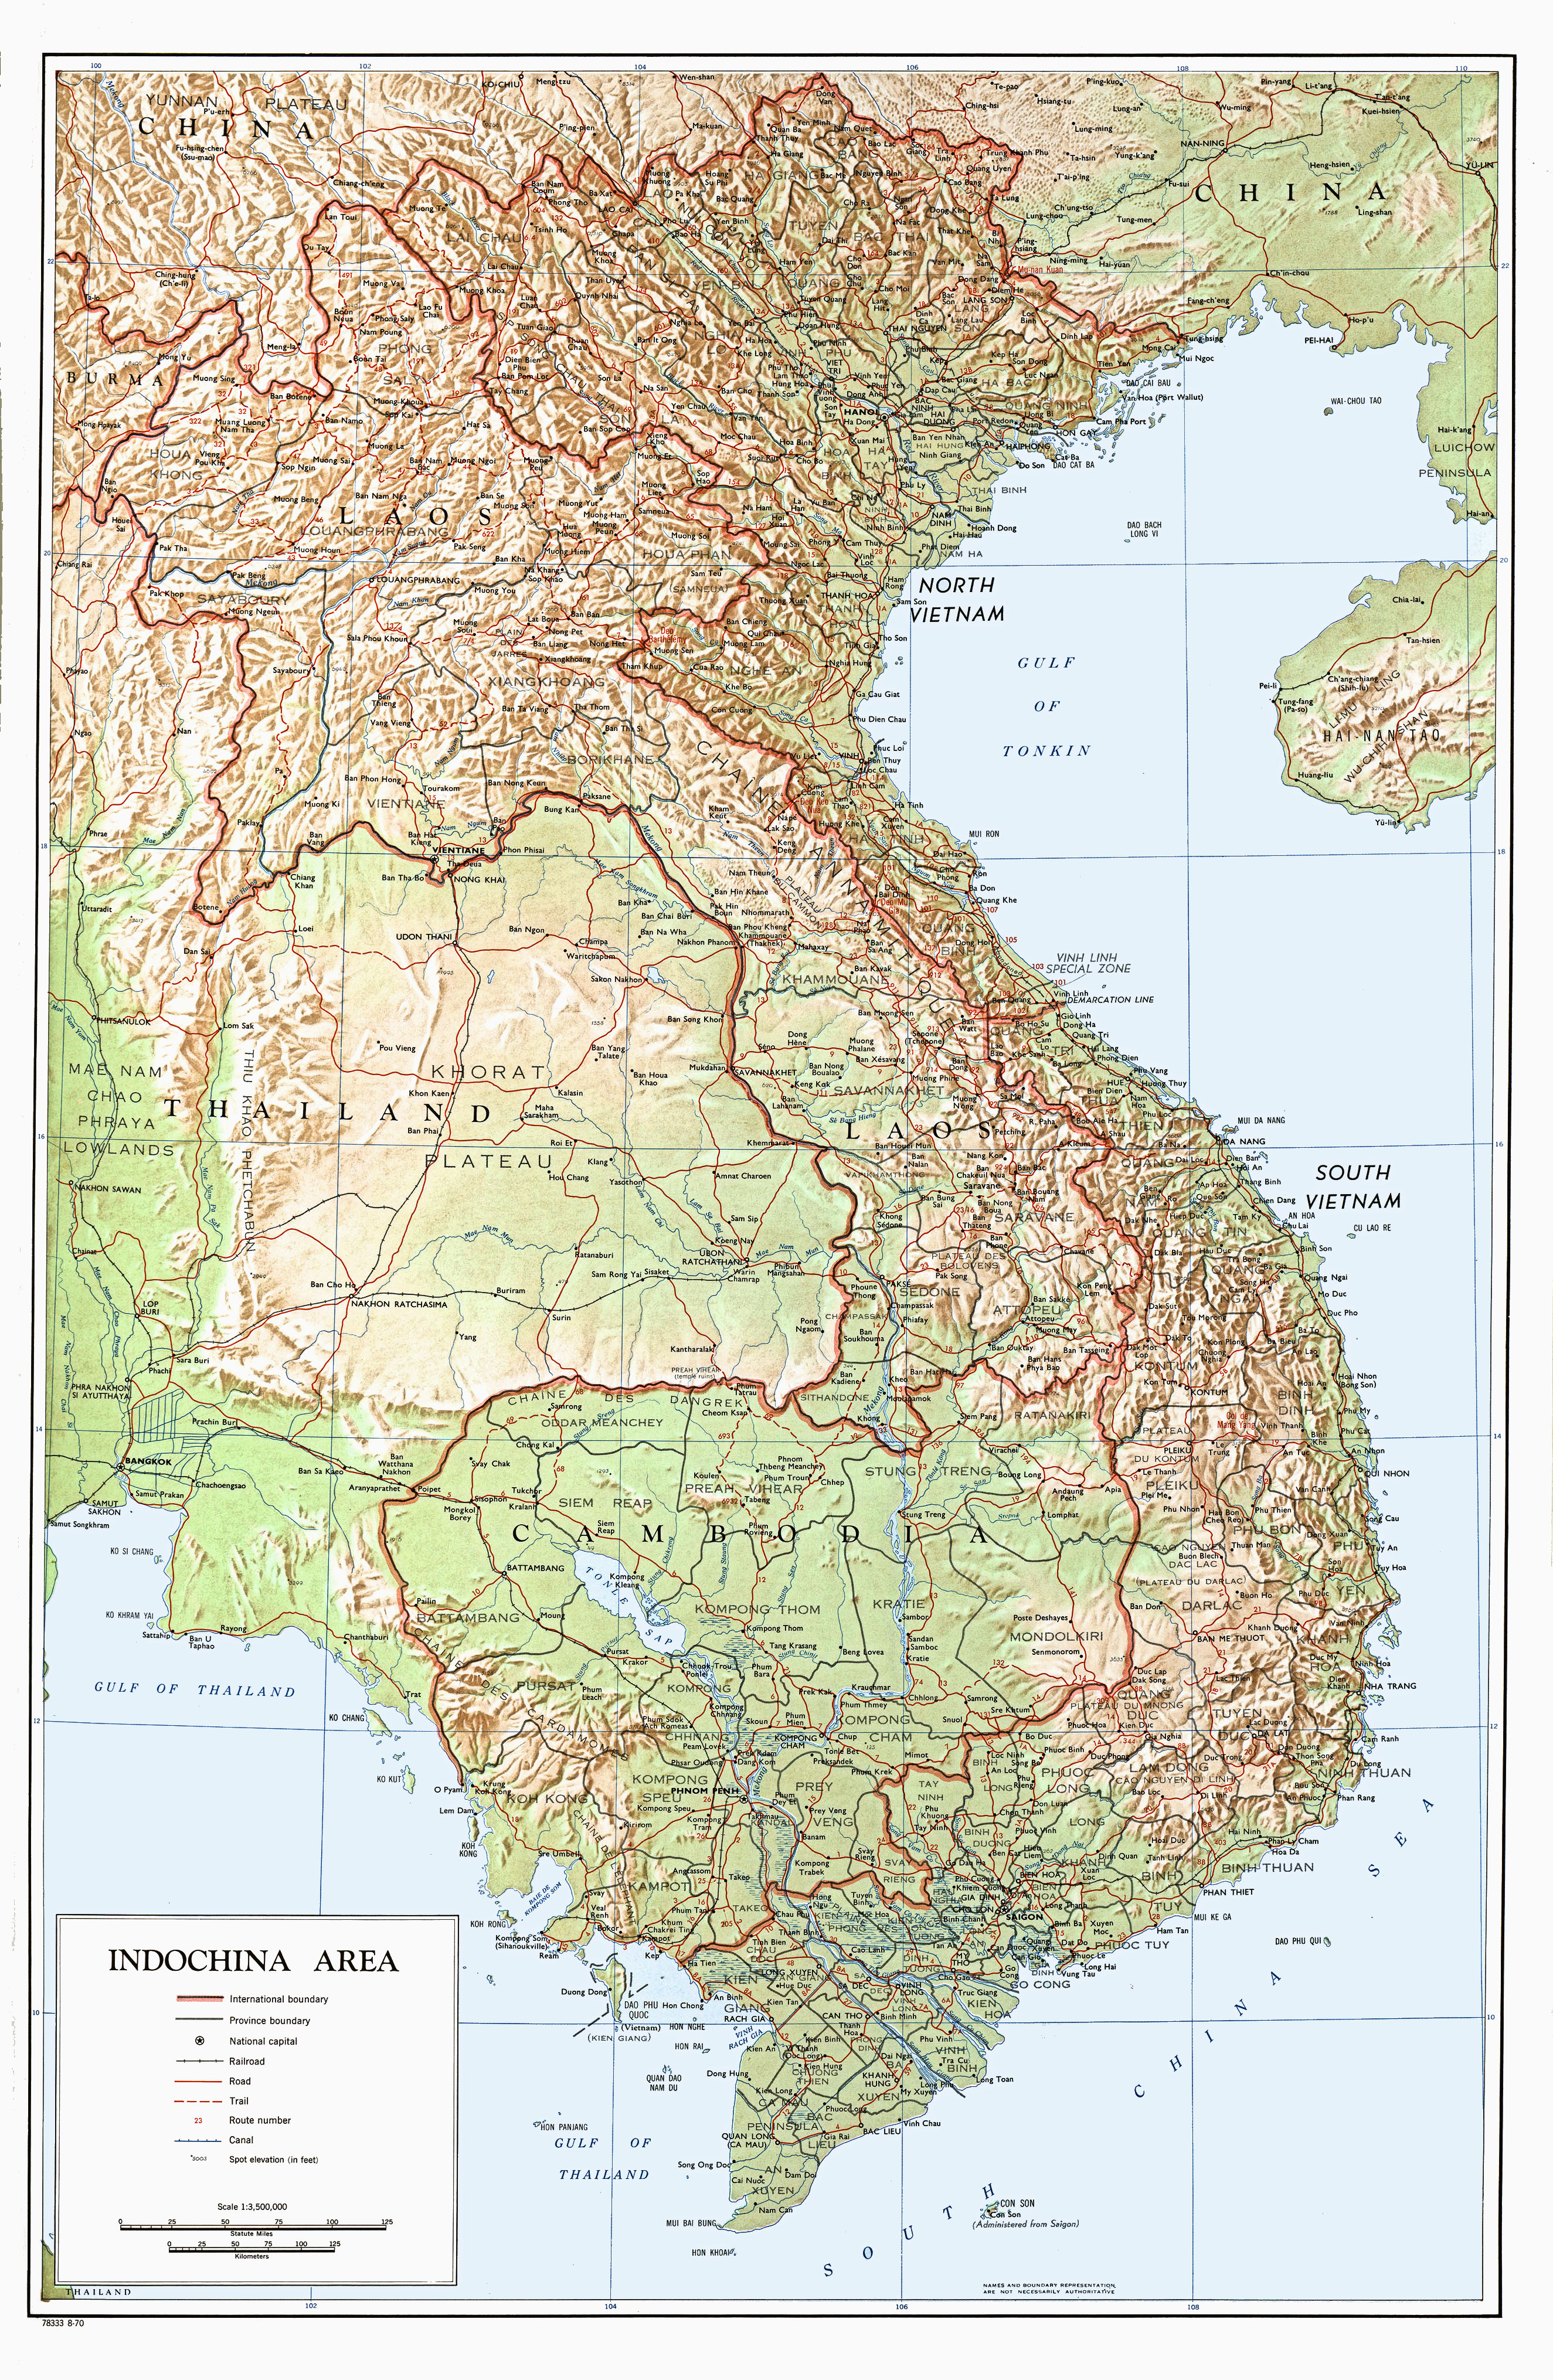 an introduction to the history of vietnam Introduction the vietnamese call it the american war in america it's called the vietnam war this is a short history of that war, from the point of view of the.